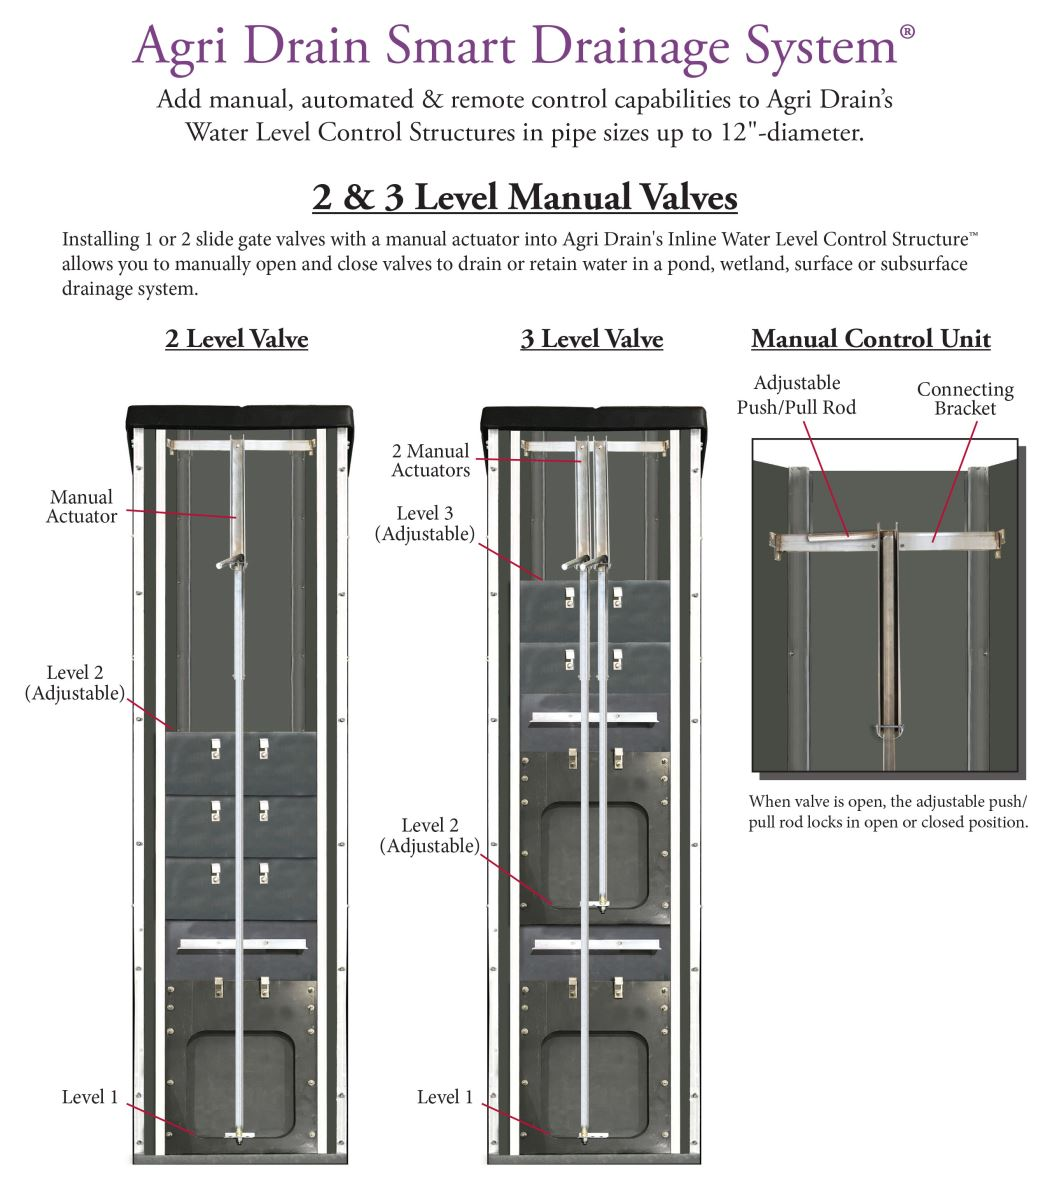 Smart Drainage System 2 & 3 Level Manual